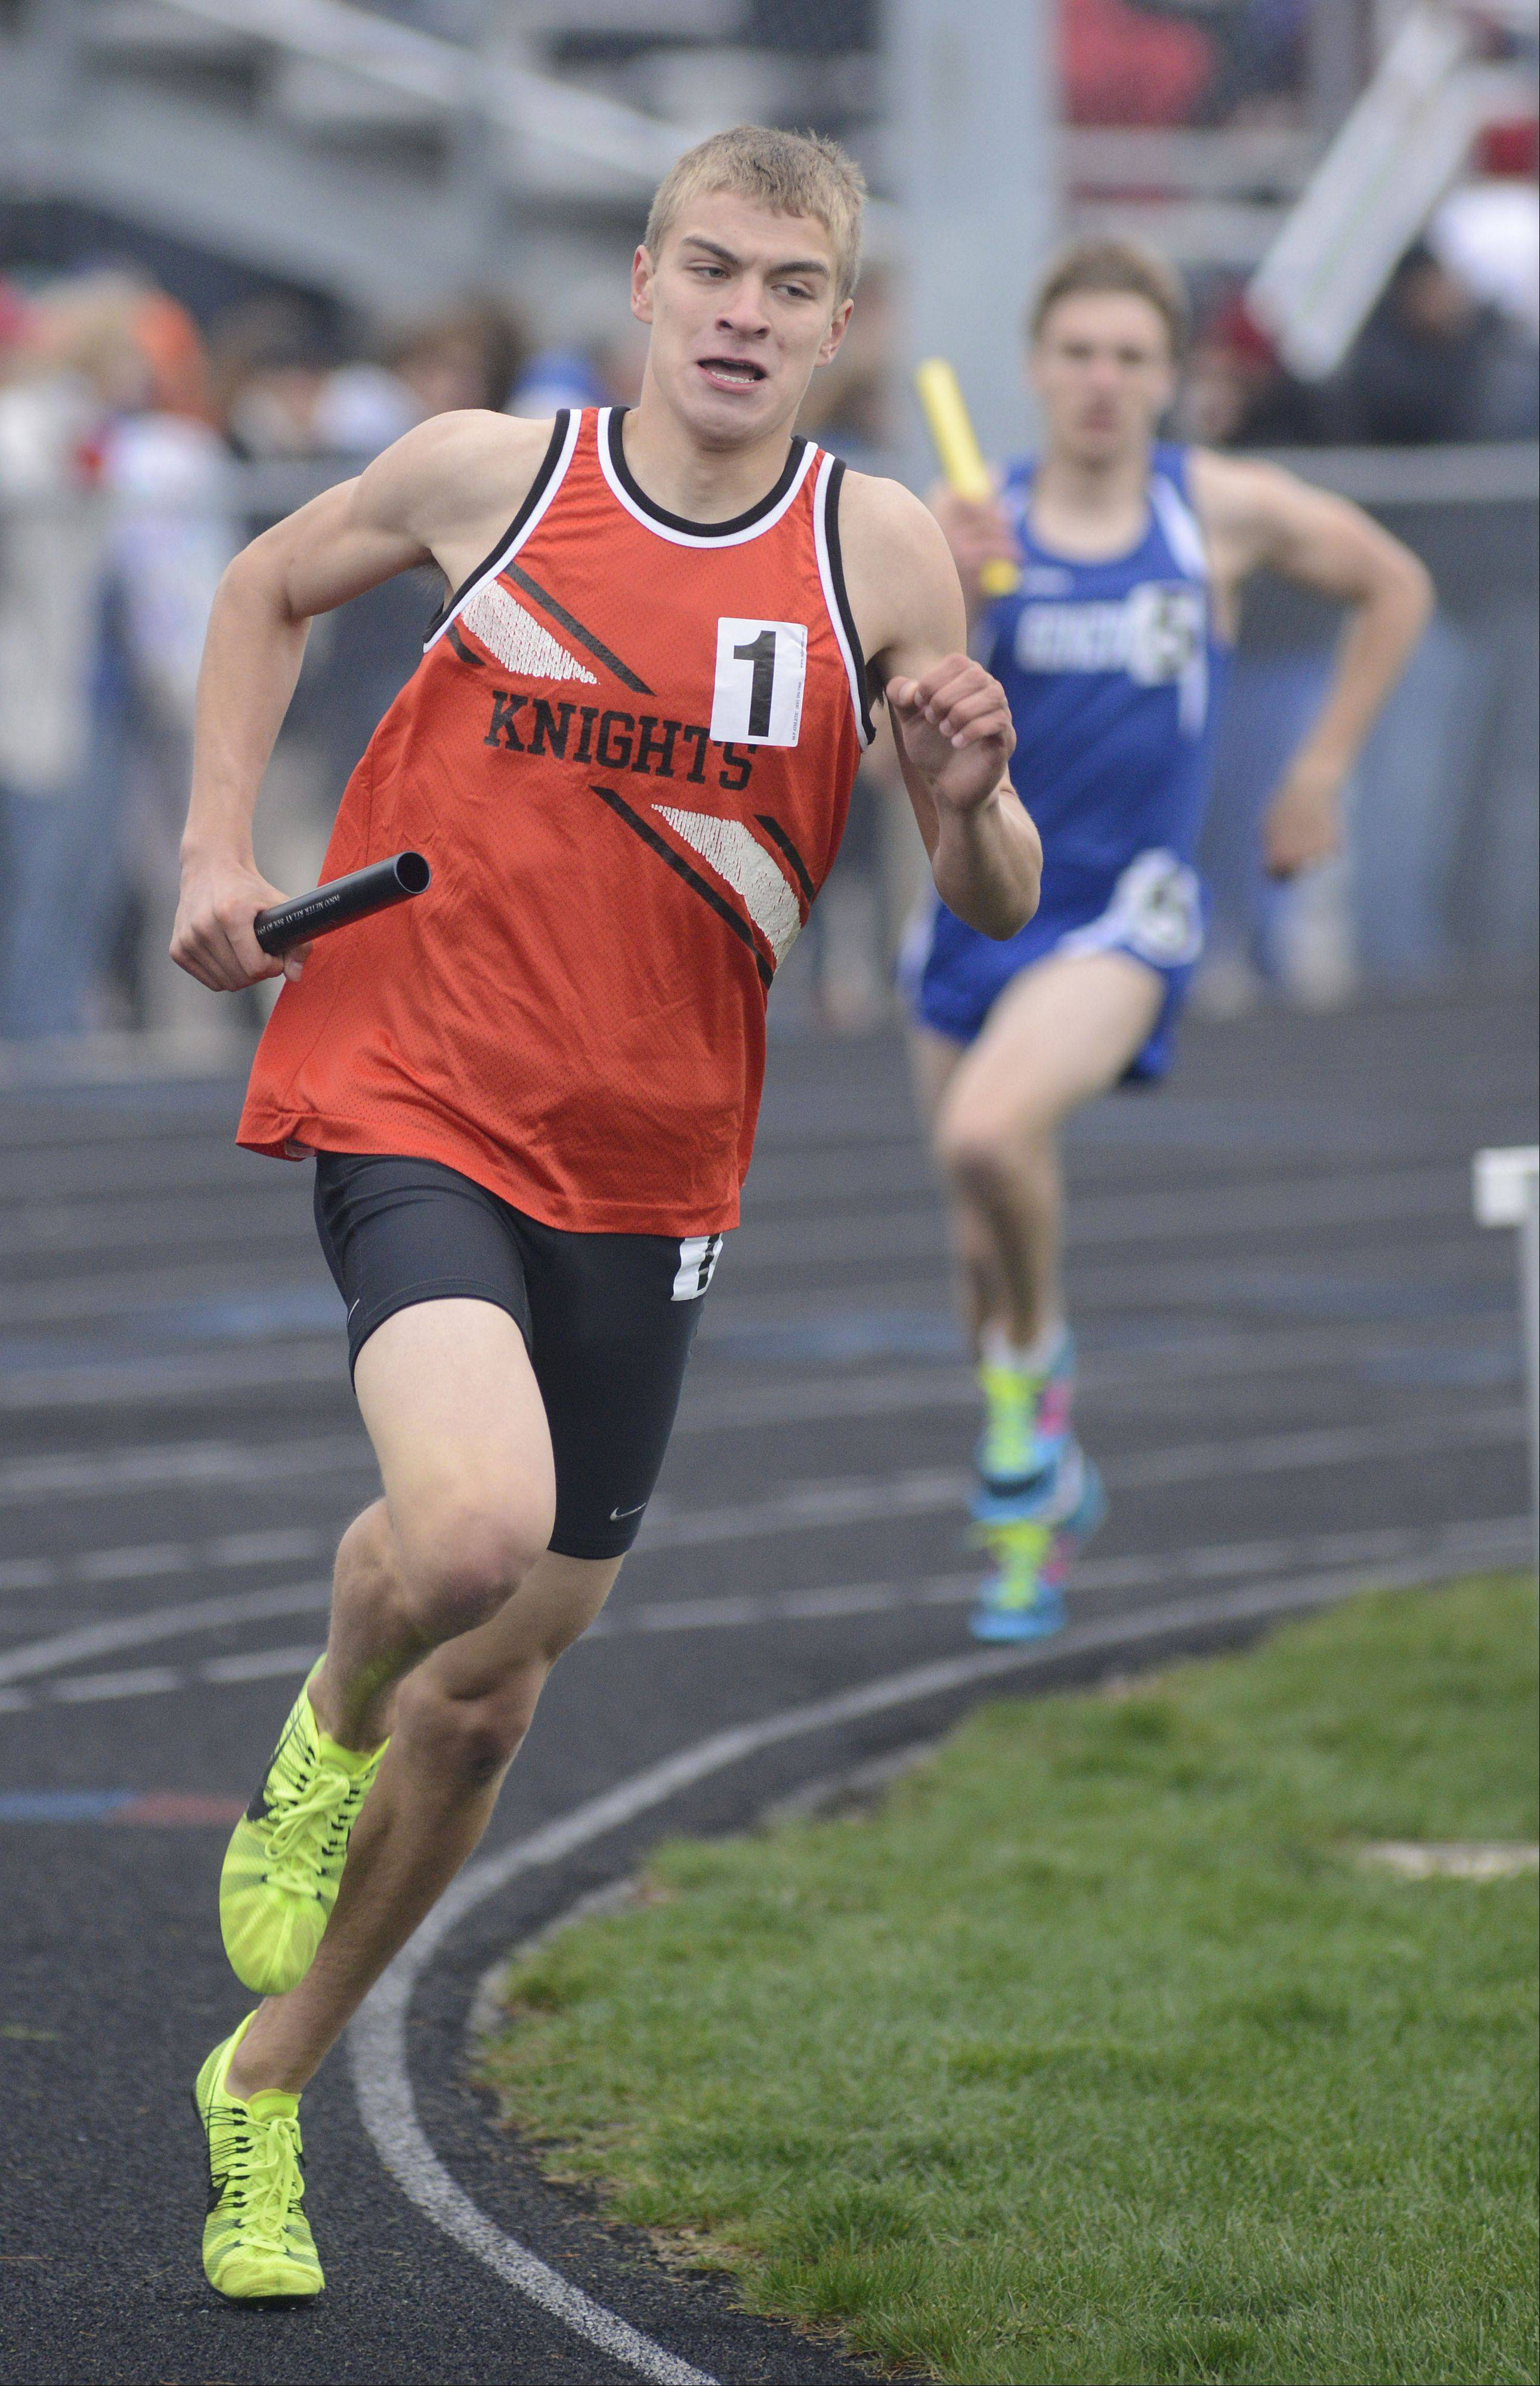 Kaneland's Nathaniel Kucera leads the 4 x 800 meter relay in the last lap with Geneva's Nathan Wendt on his trail at the Kane County Boys Track Meet at Burlington Central on Friday.